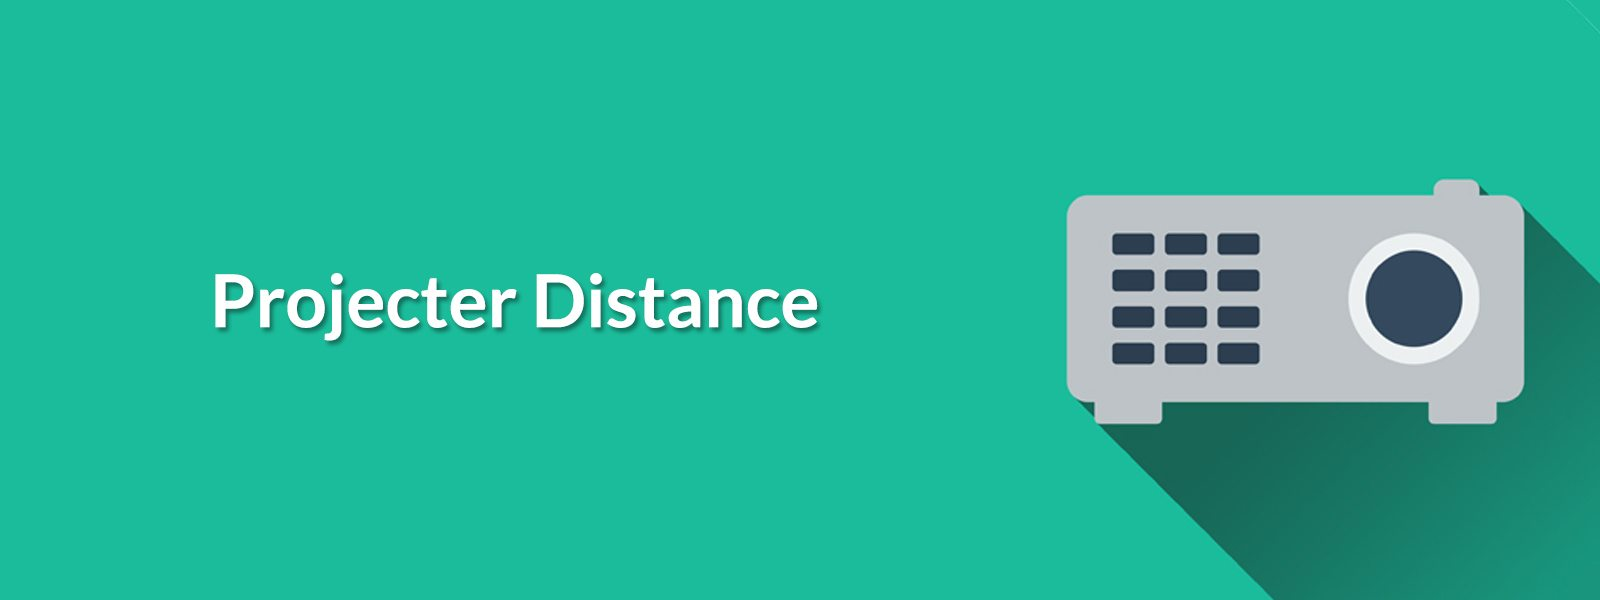 Projecter Distance